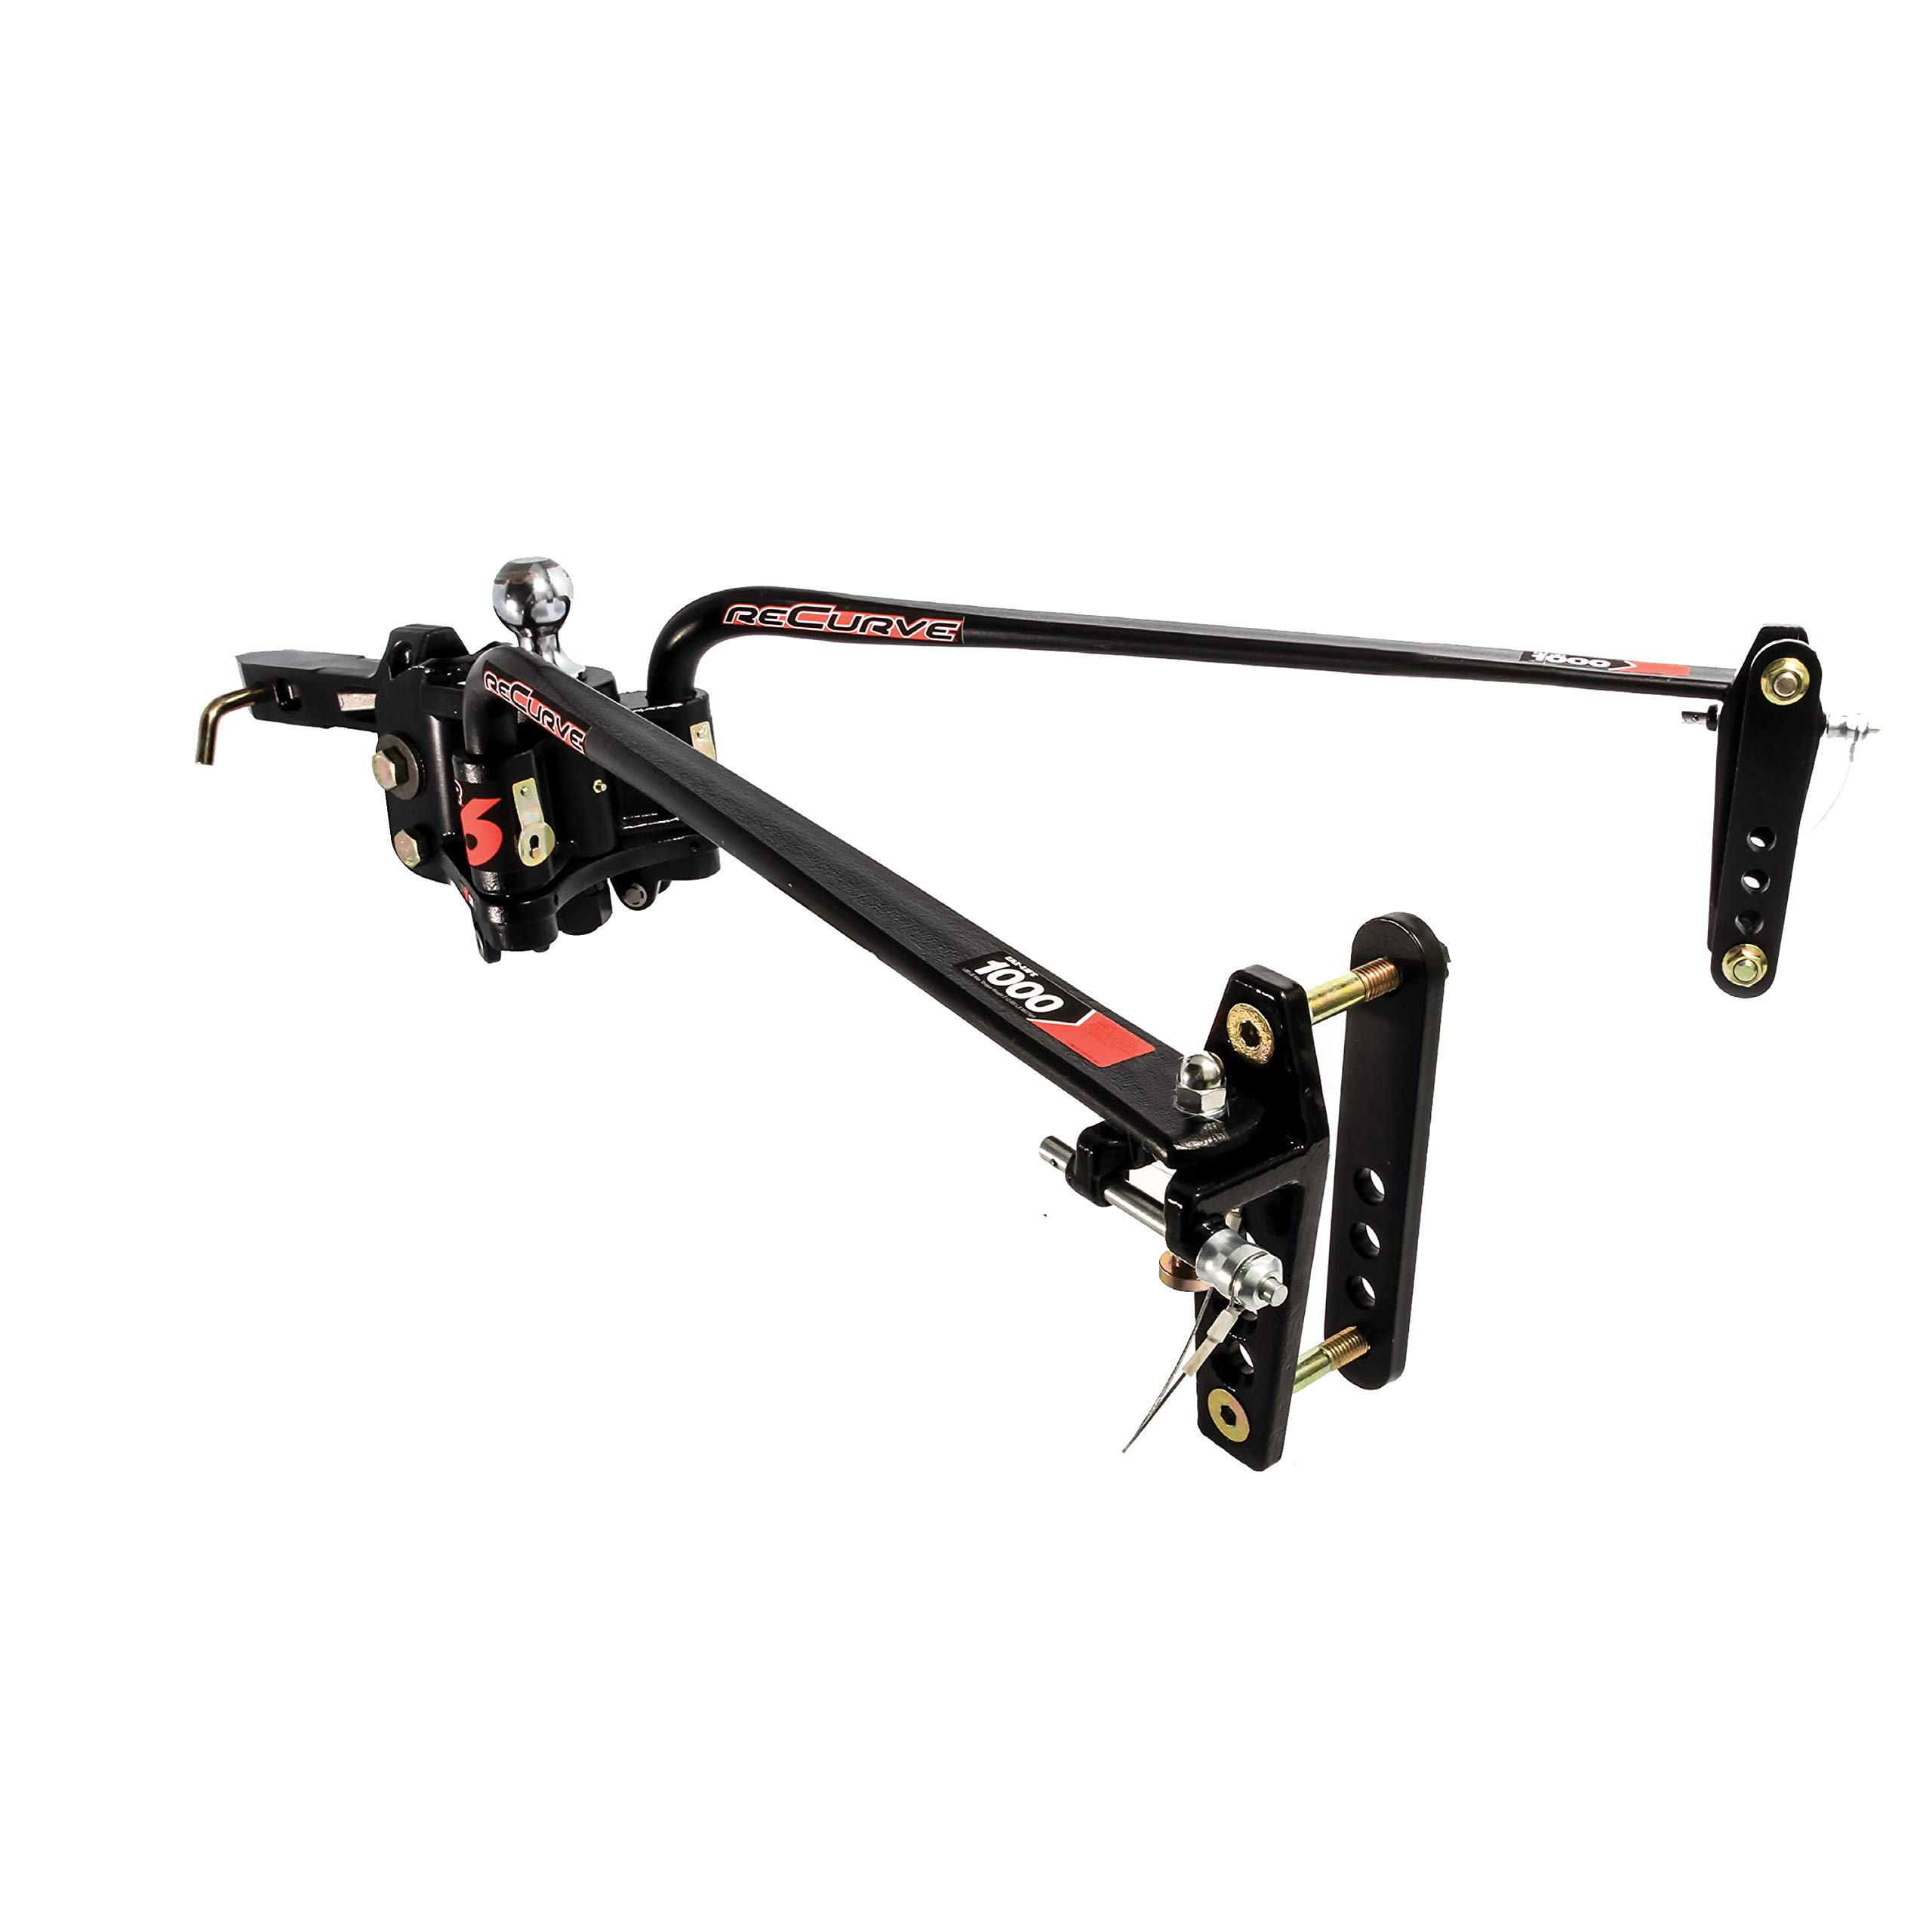 Camco Chem 48731 ReCurve R6 Distribution Hitch-600 lb Weight Capacity with Premium Adaptive Sway Control, Contains Hitch Ball by Camco Chem